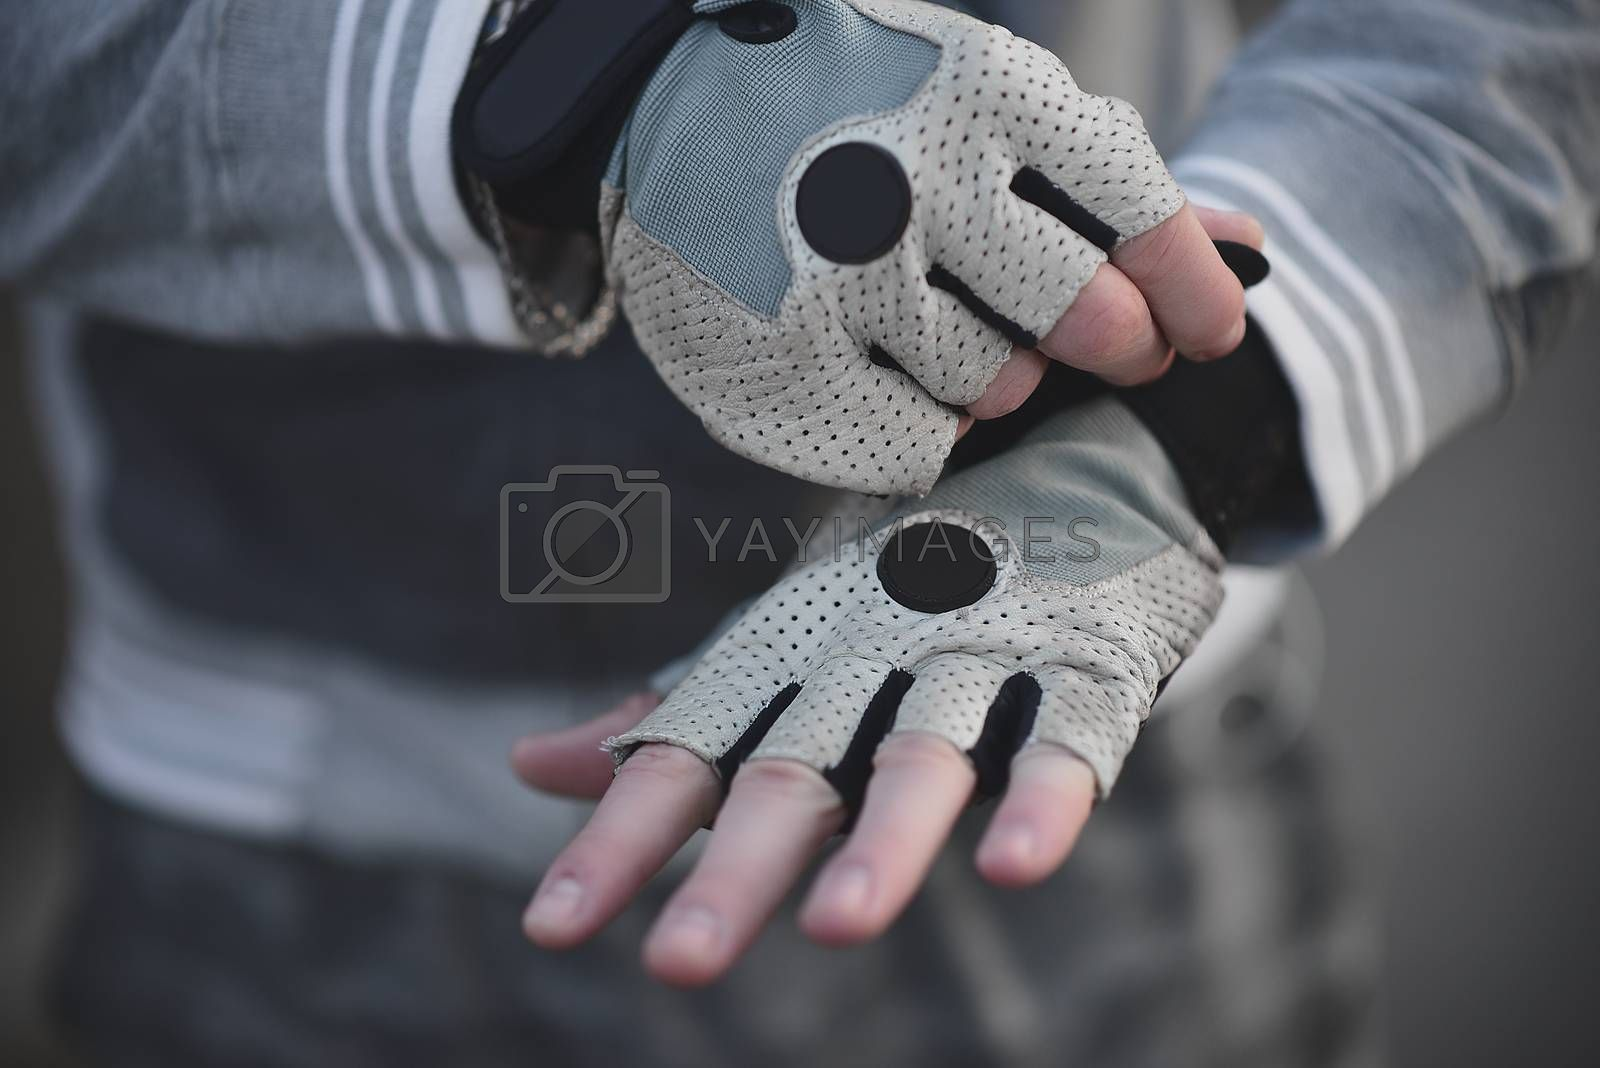 A Man on the street puts on his hands sports gloves and prepares for coaching.